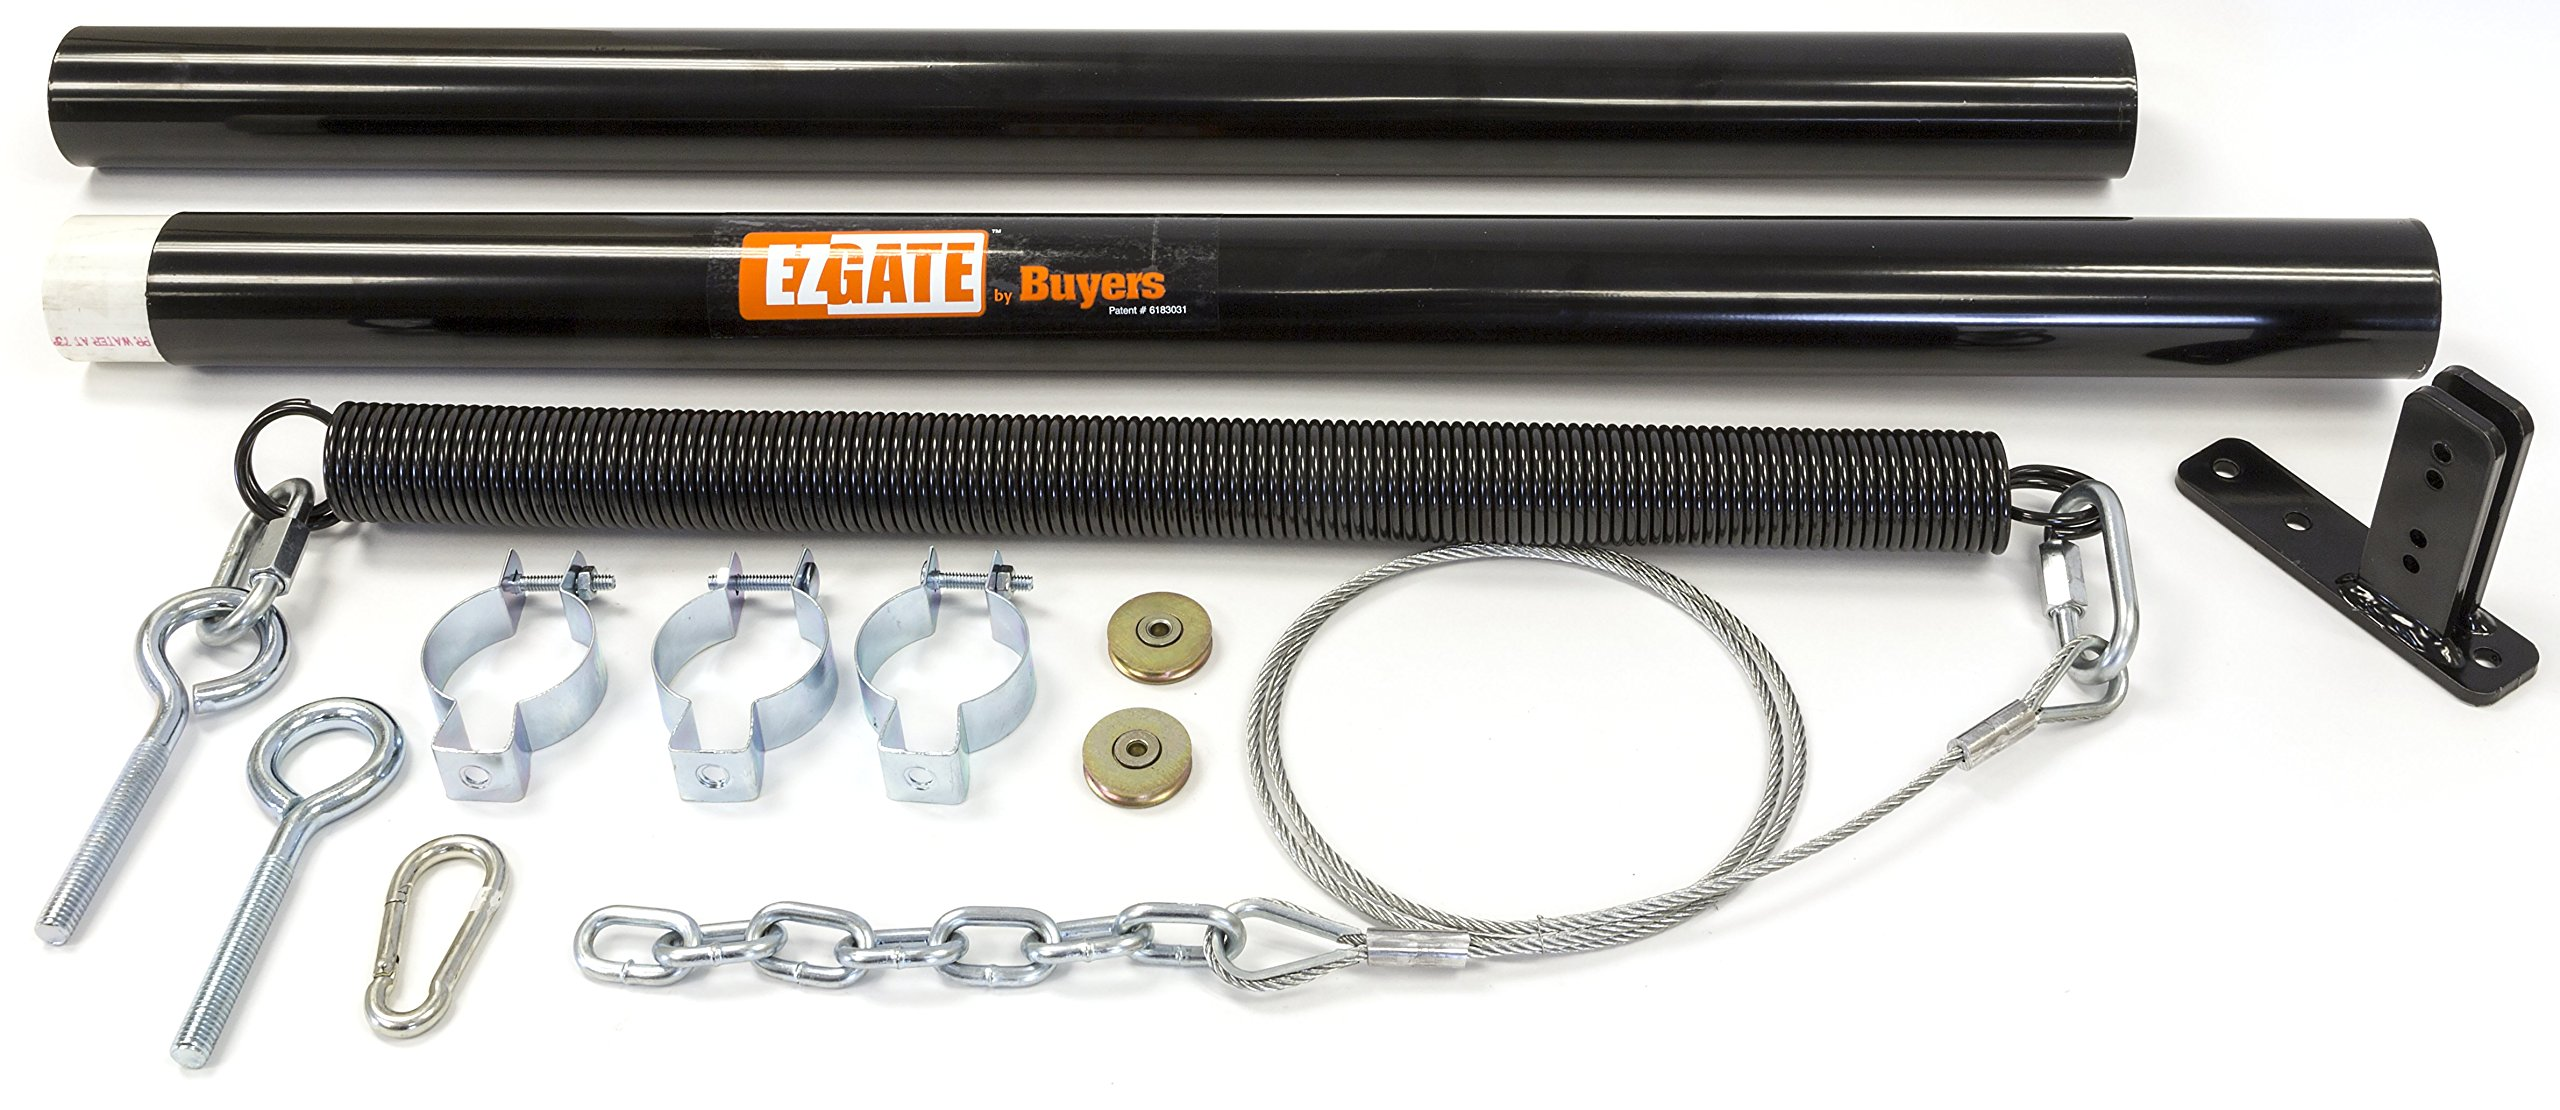 Buyers Products 5201000 Tailgate Assist (Tailgate Assist,Ez Gate)